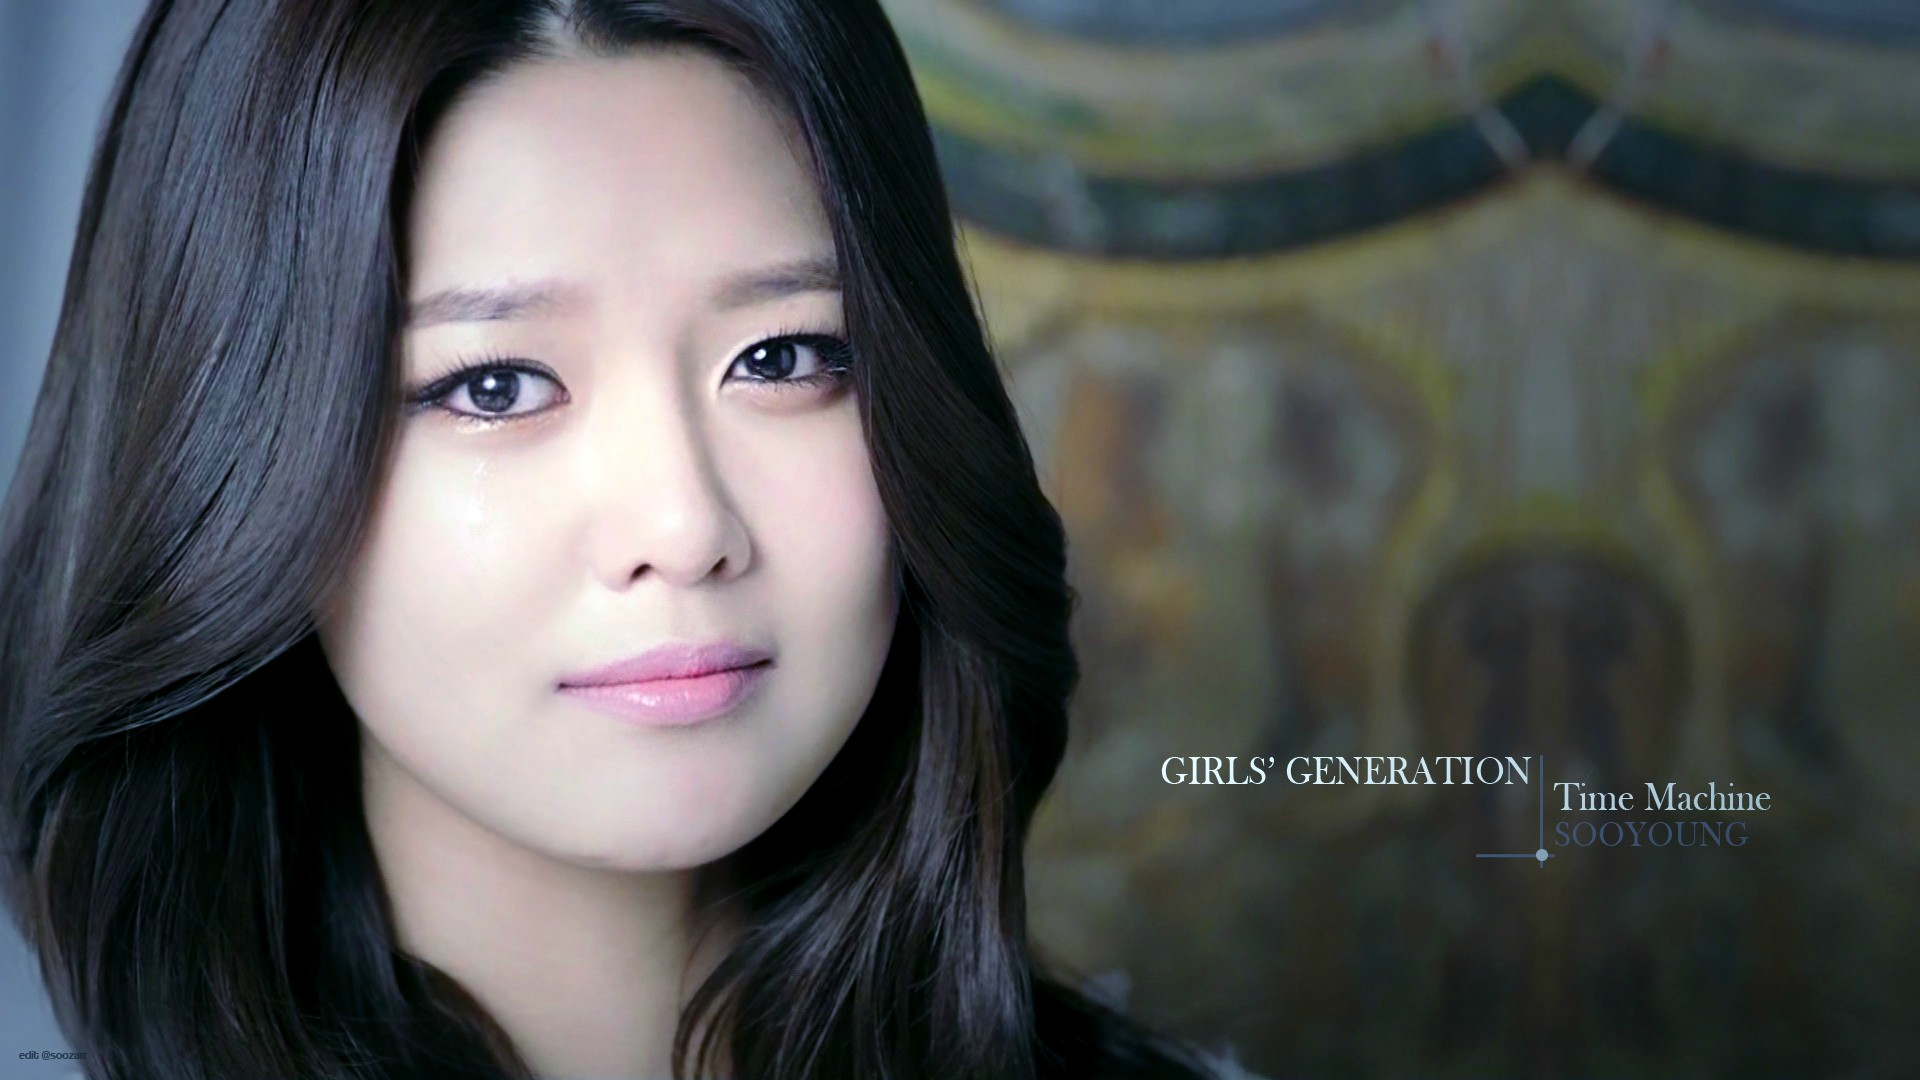 Girls Generation/SNSD SNSD Sooyoung Time Machine Wallpaper